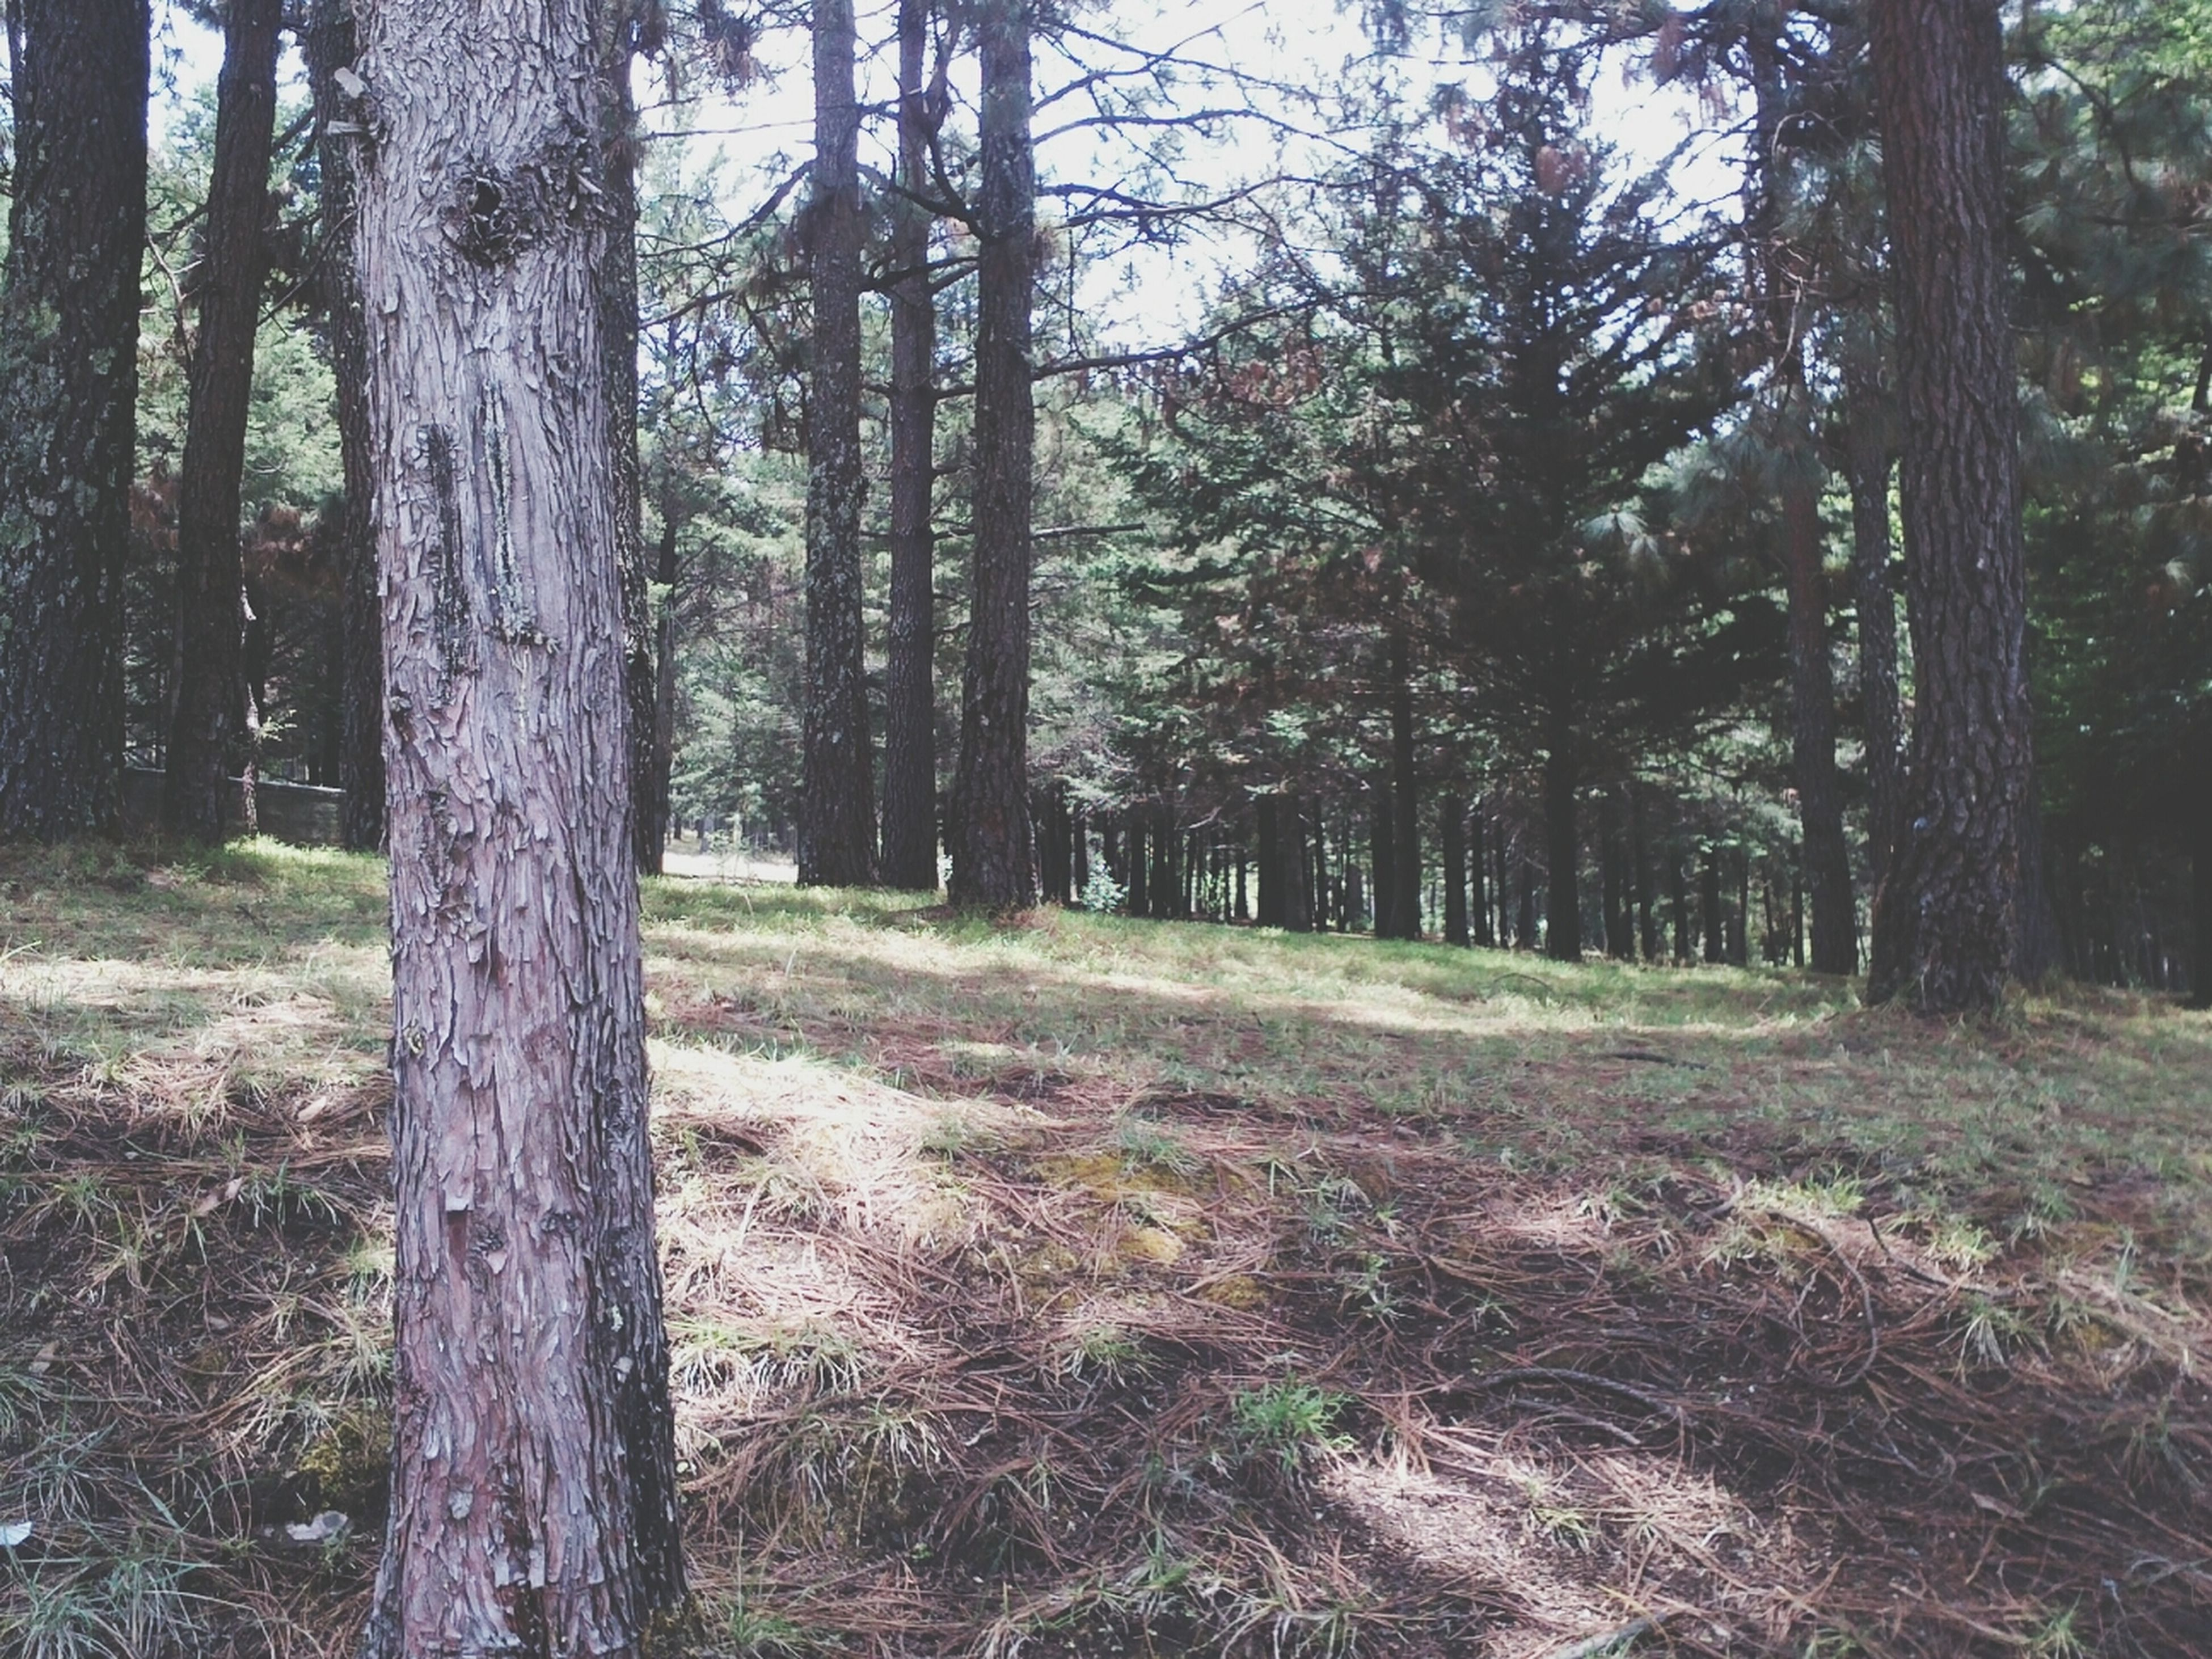 tree, tree trunk, forest, tranquility, woodland, growth, nature, tranquil scene, branch, beauty in nature, scenics, non-urban scene, landscape, day, outdoors, no people, sunlight, bare tree, idyllic, remote